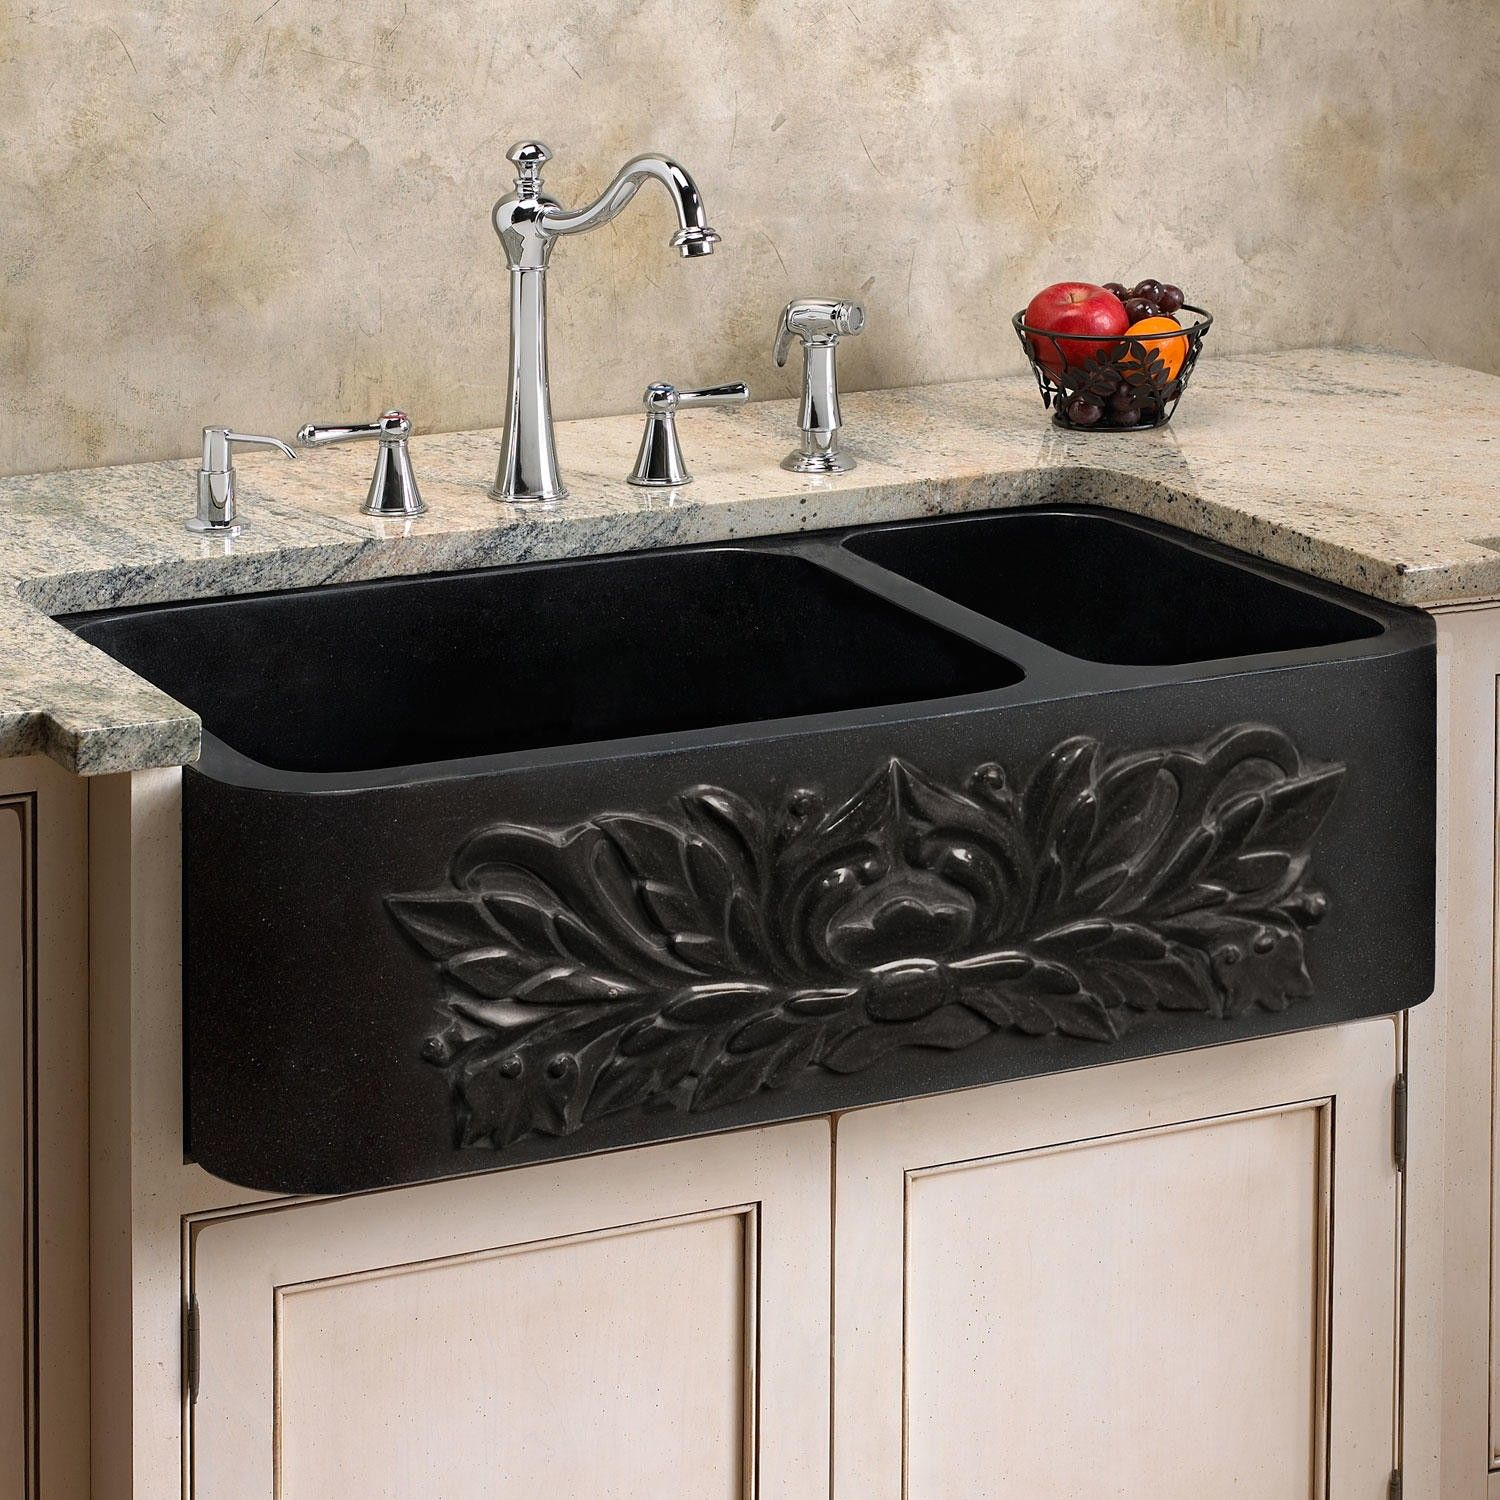 33 Ivy 70 30 Offset Double Bowl Polished Granite Farmhouse Sink Black Farmhouse Sink Kitchen Black Farmhouse Sink Farmhouse Sink